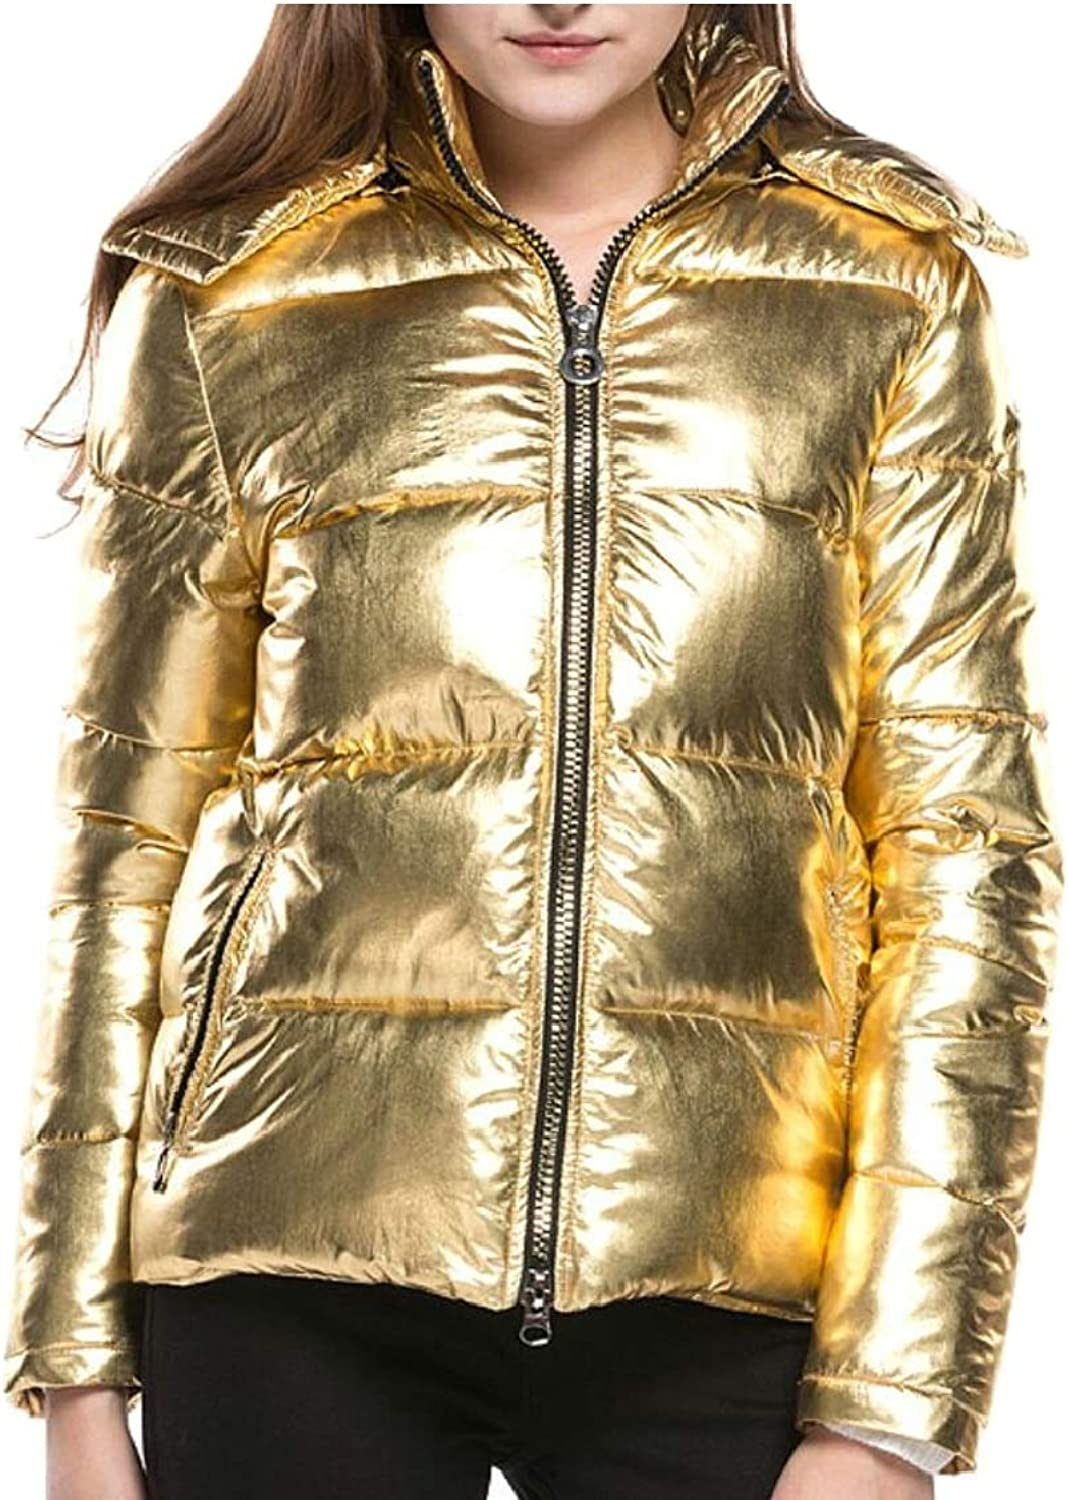 Gocgt Women's Down Jacket Hooded Short Quilted Down Puffer Jacket Coat